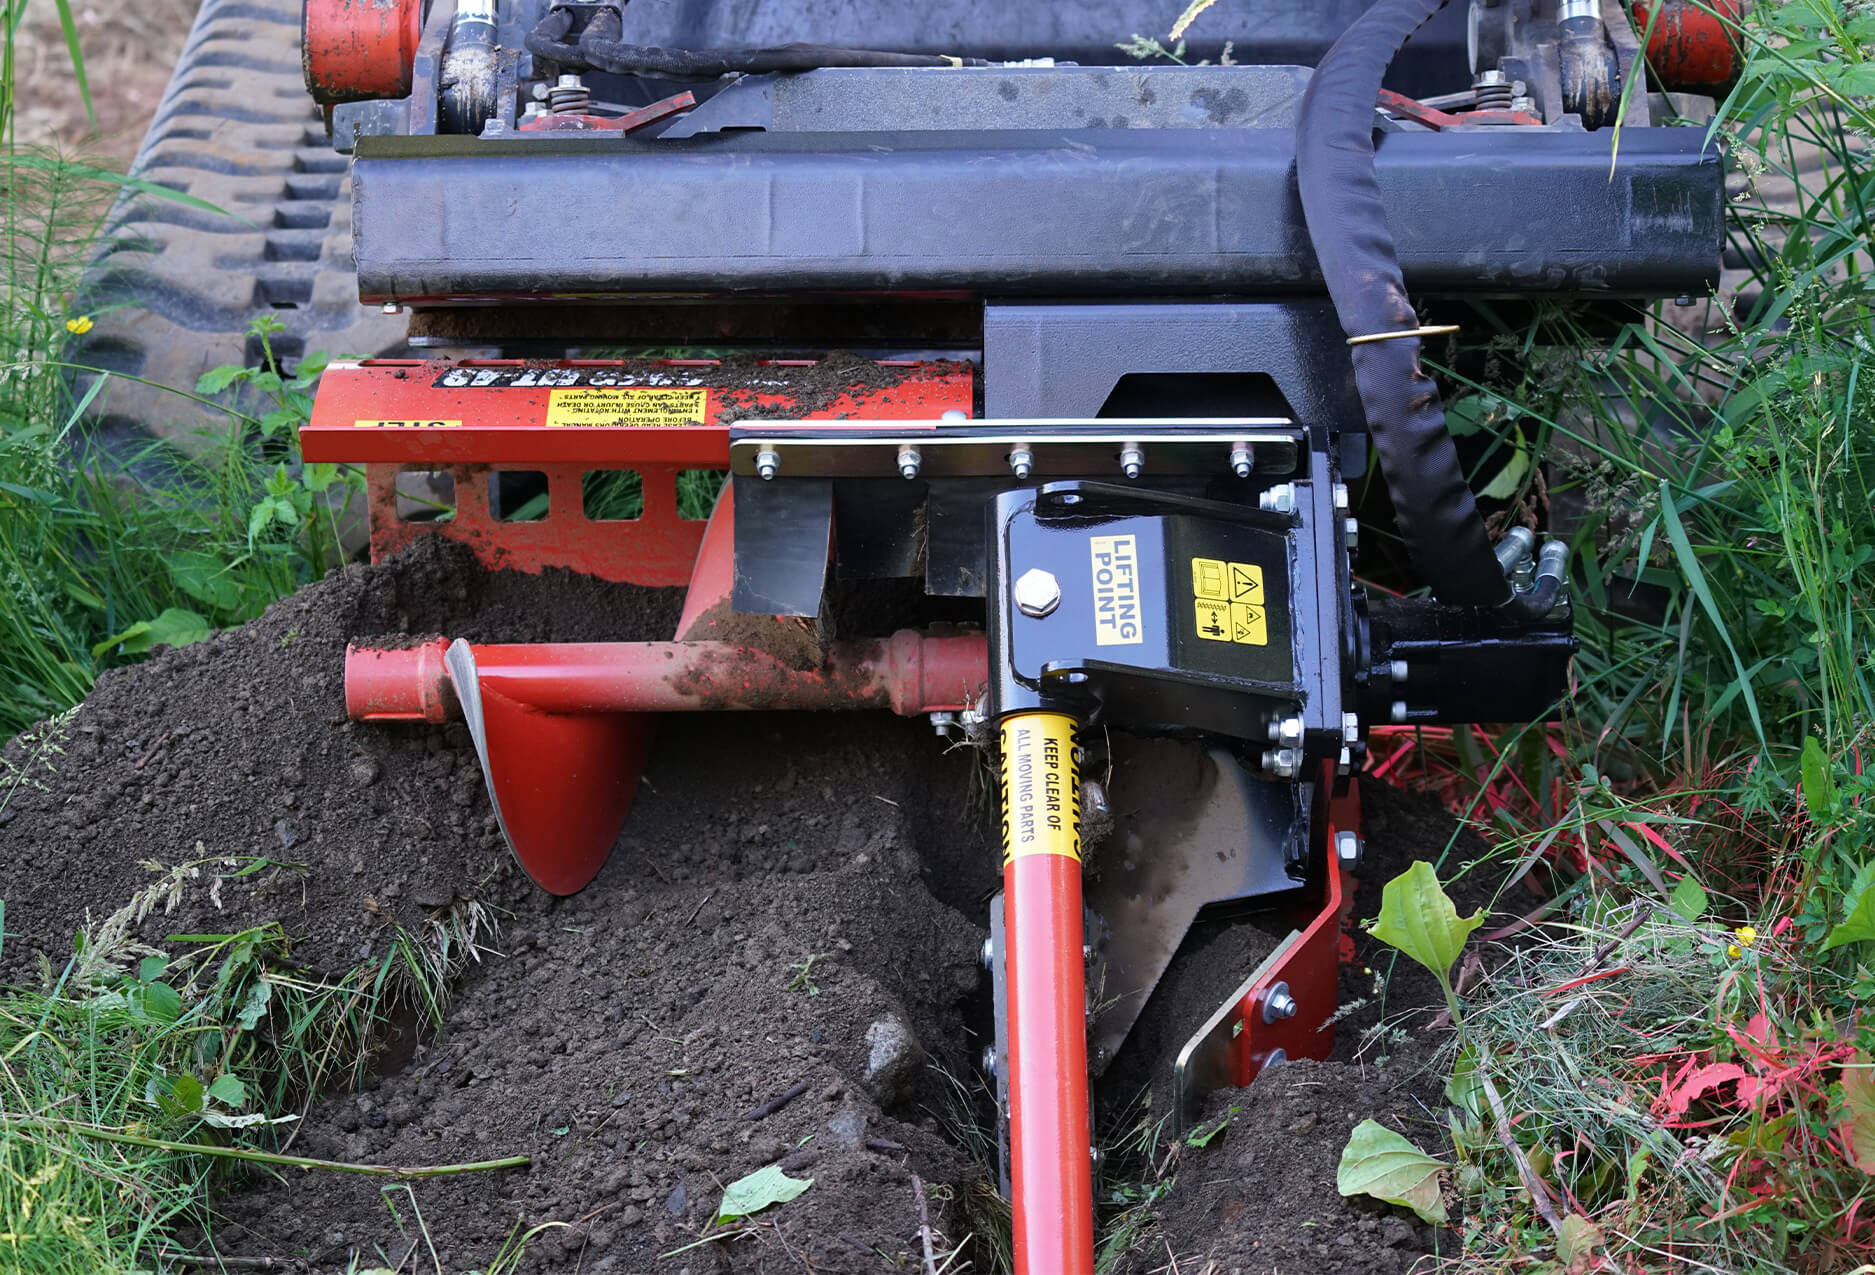 Eterra Skid Steer Trencher set at 3' depth.